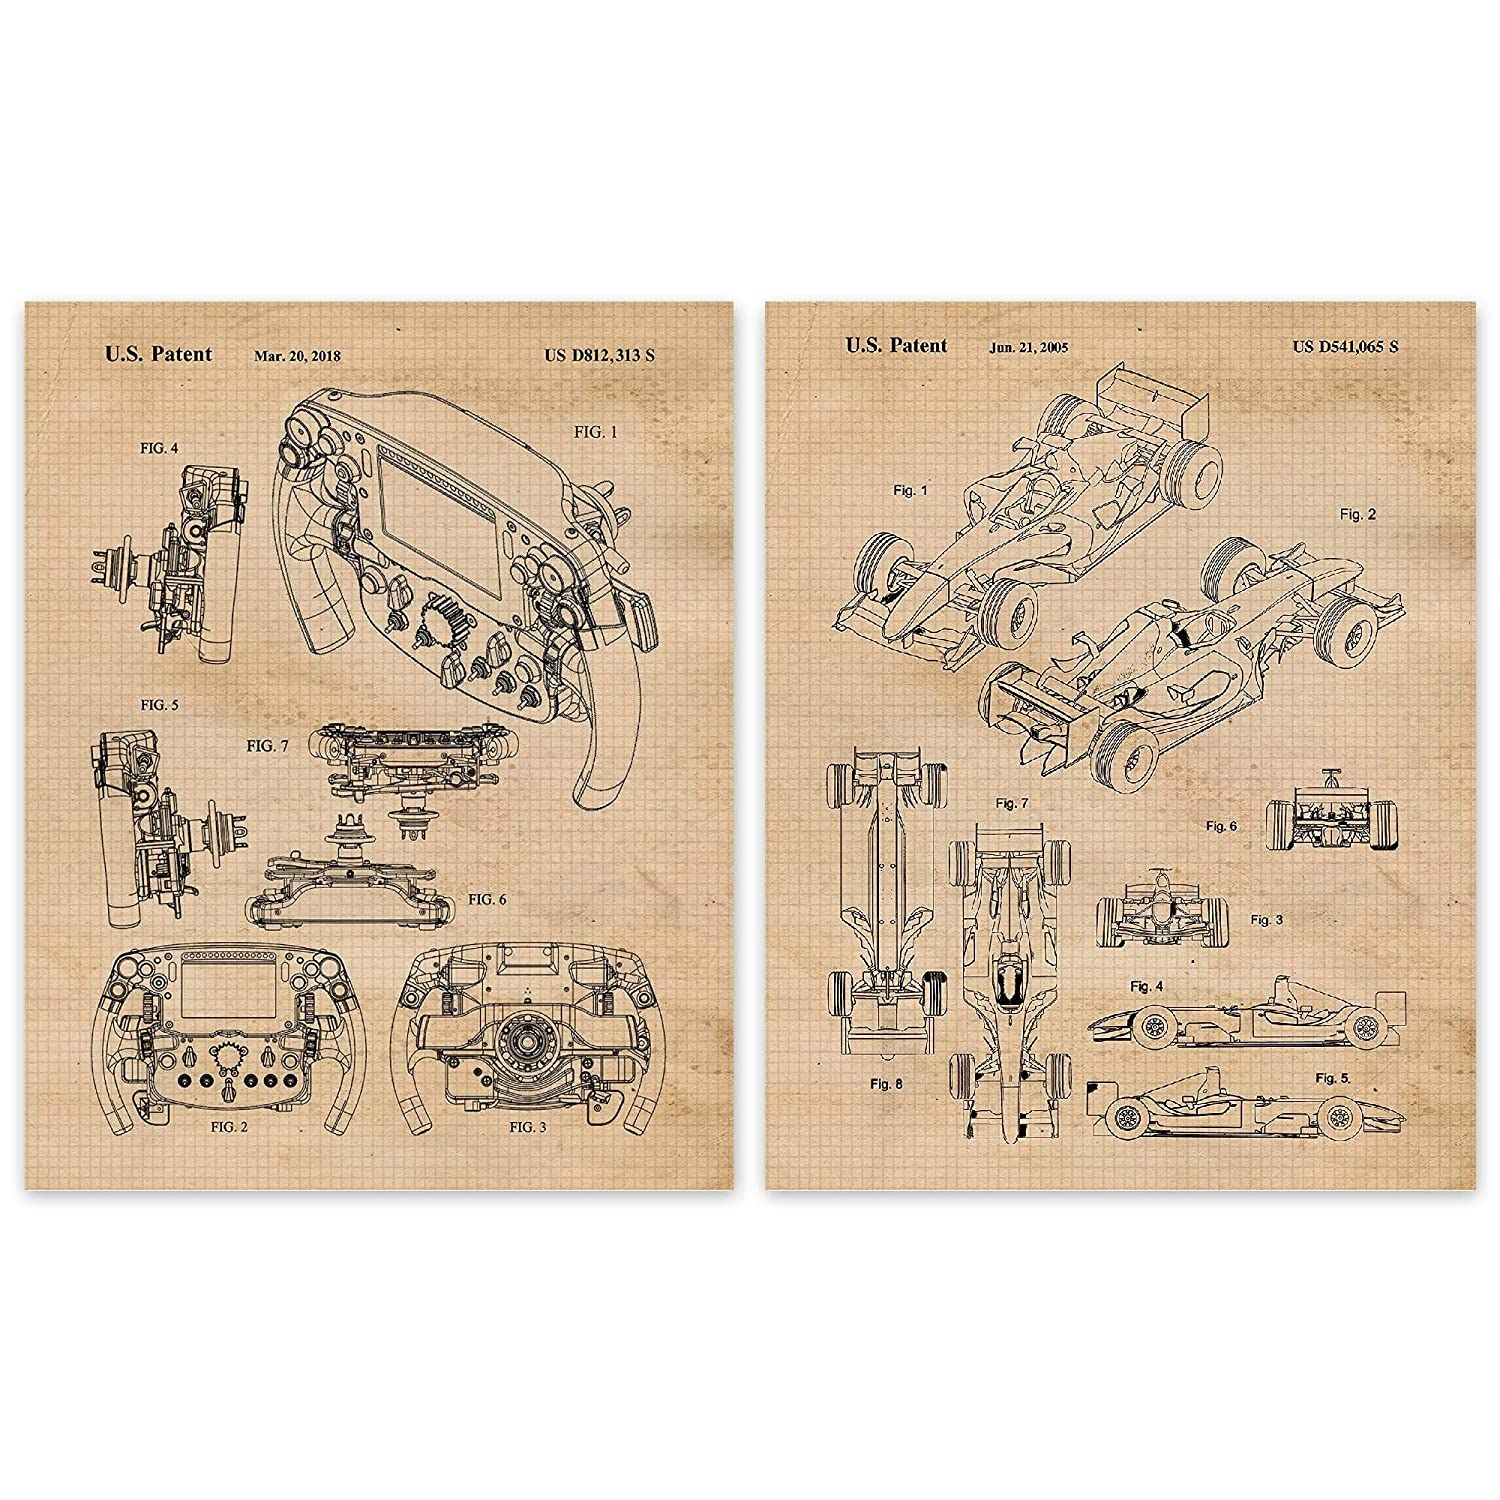 Amazon Com Vintage Ferrari F1 Racing Patent Poster Prints Set Of 2 8x10 Unframed Photos Great Wall Art Decor Gifts Under 15 For Home Office Garage Man Cave College Student Teacher Formula 1